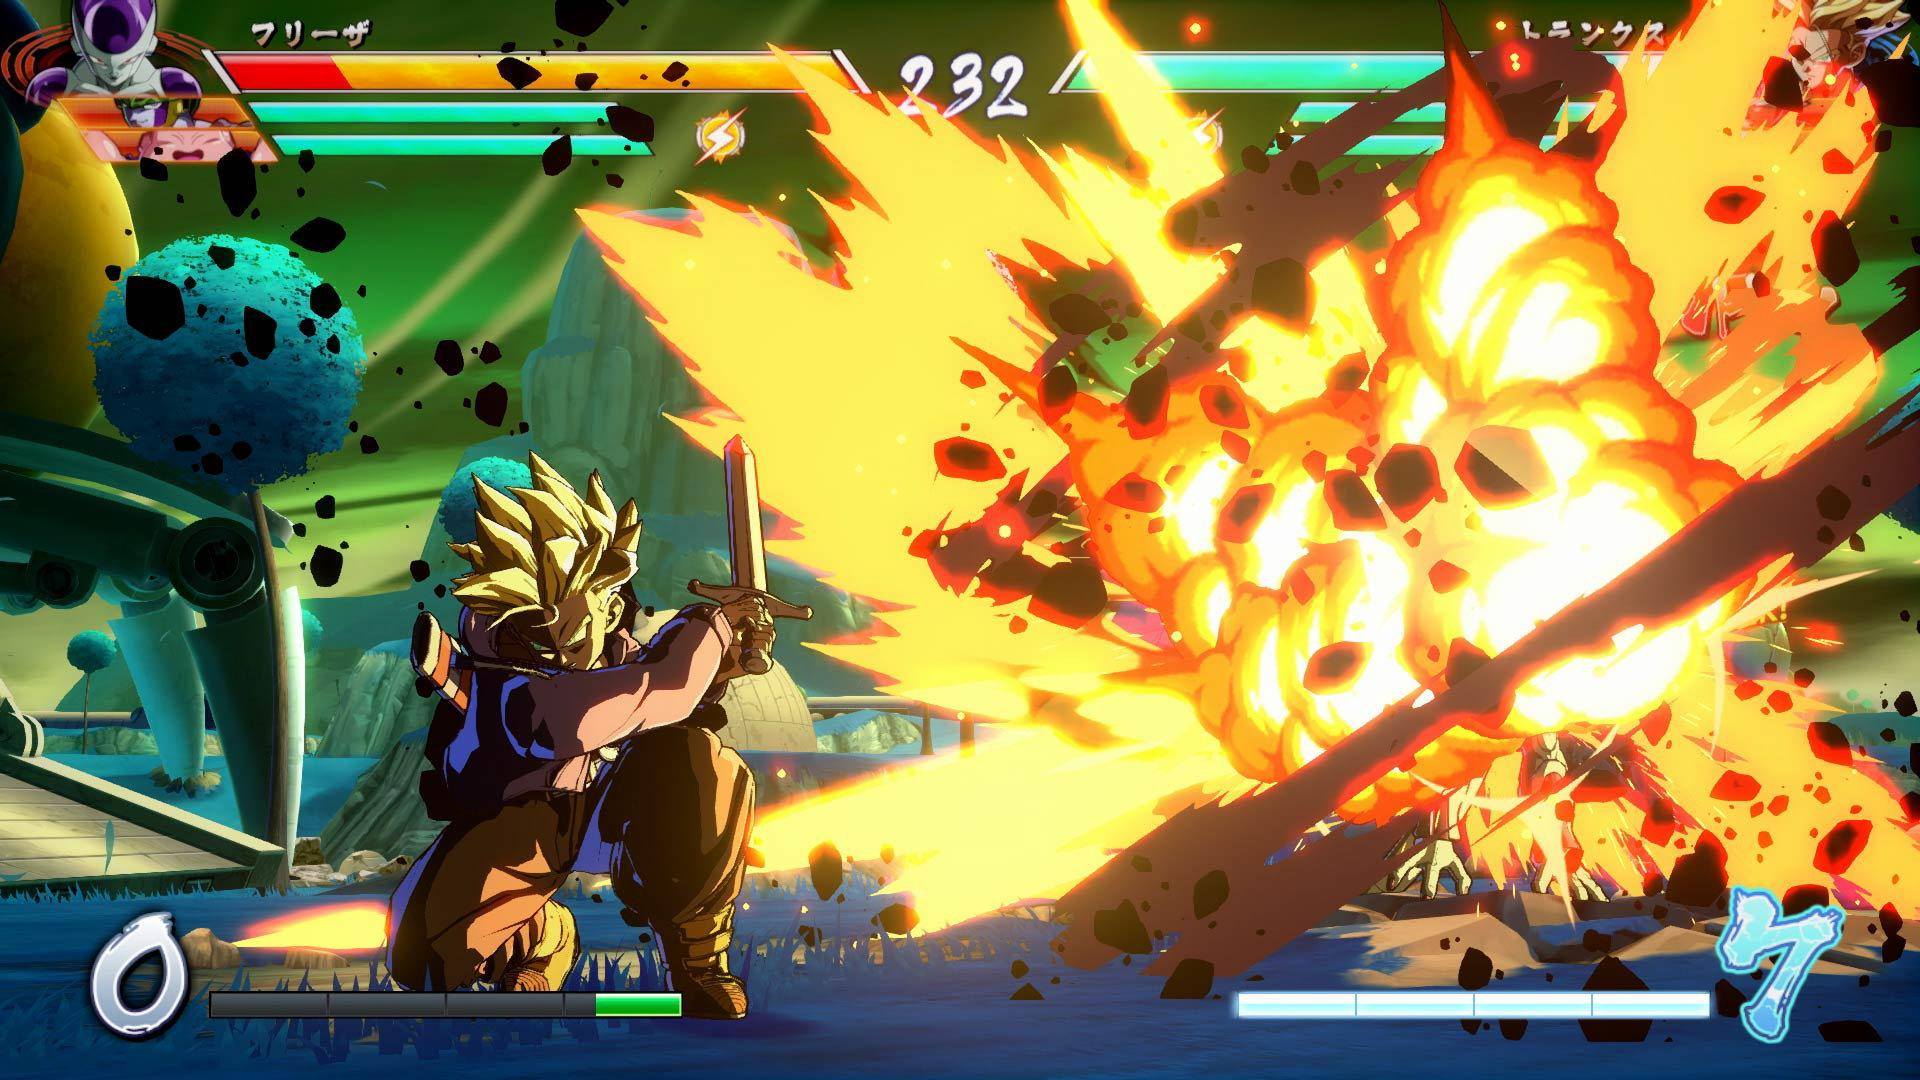 Le origini di Dragon Ball FighterZ nel primo video-diario di sviluppo